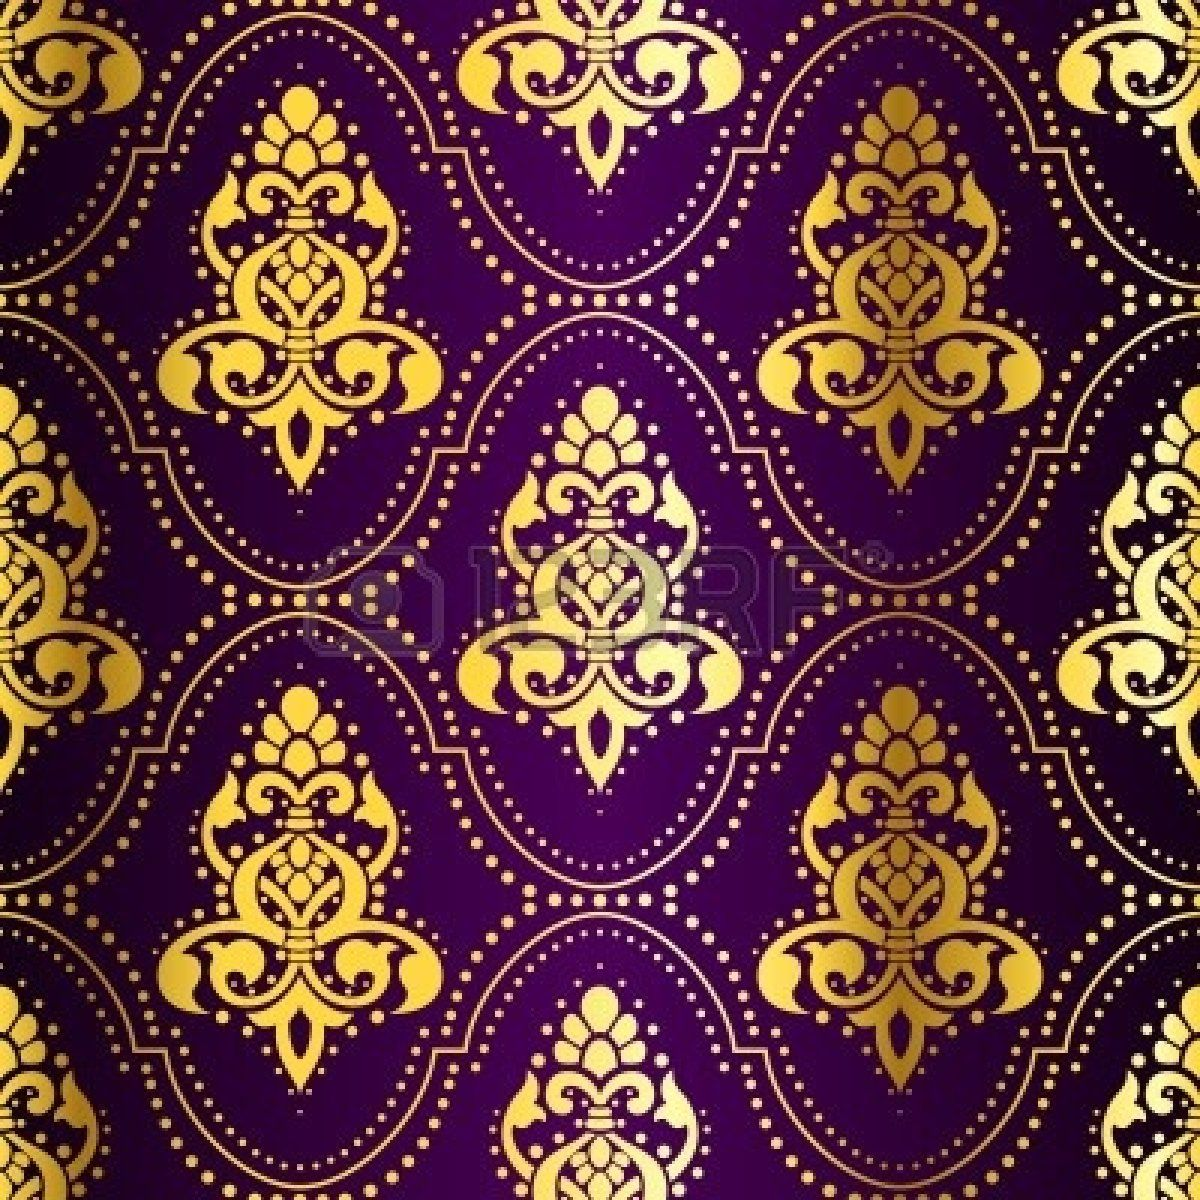 Indian Saree Gold On Purple Seamless Pattern With Dots The Tiles